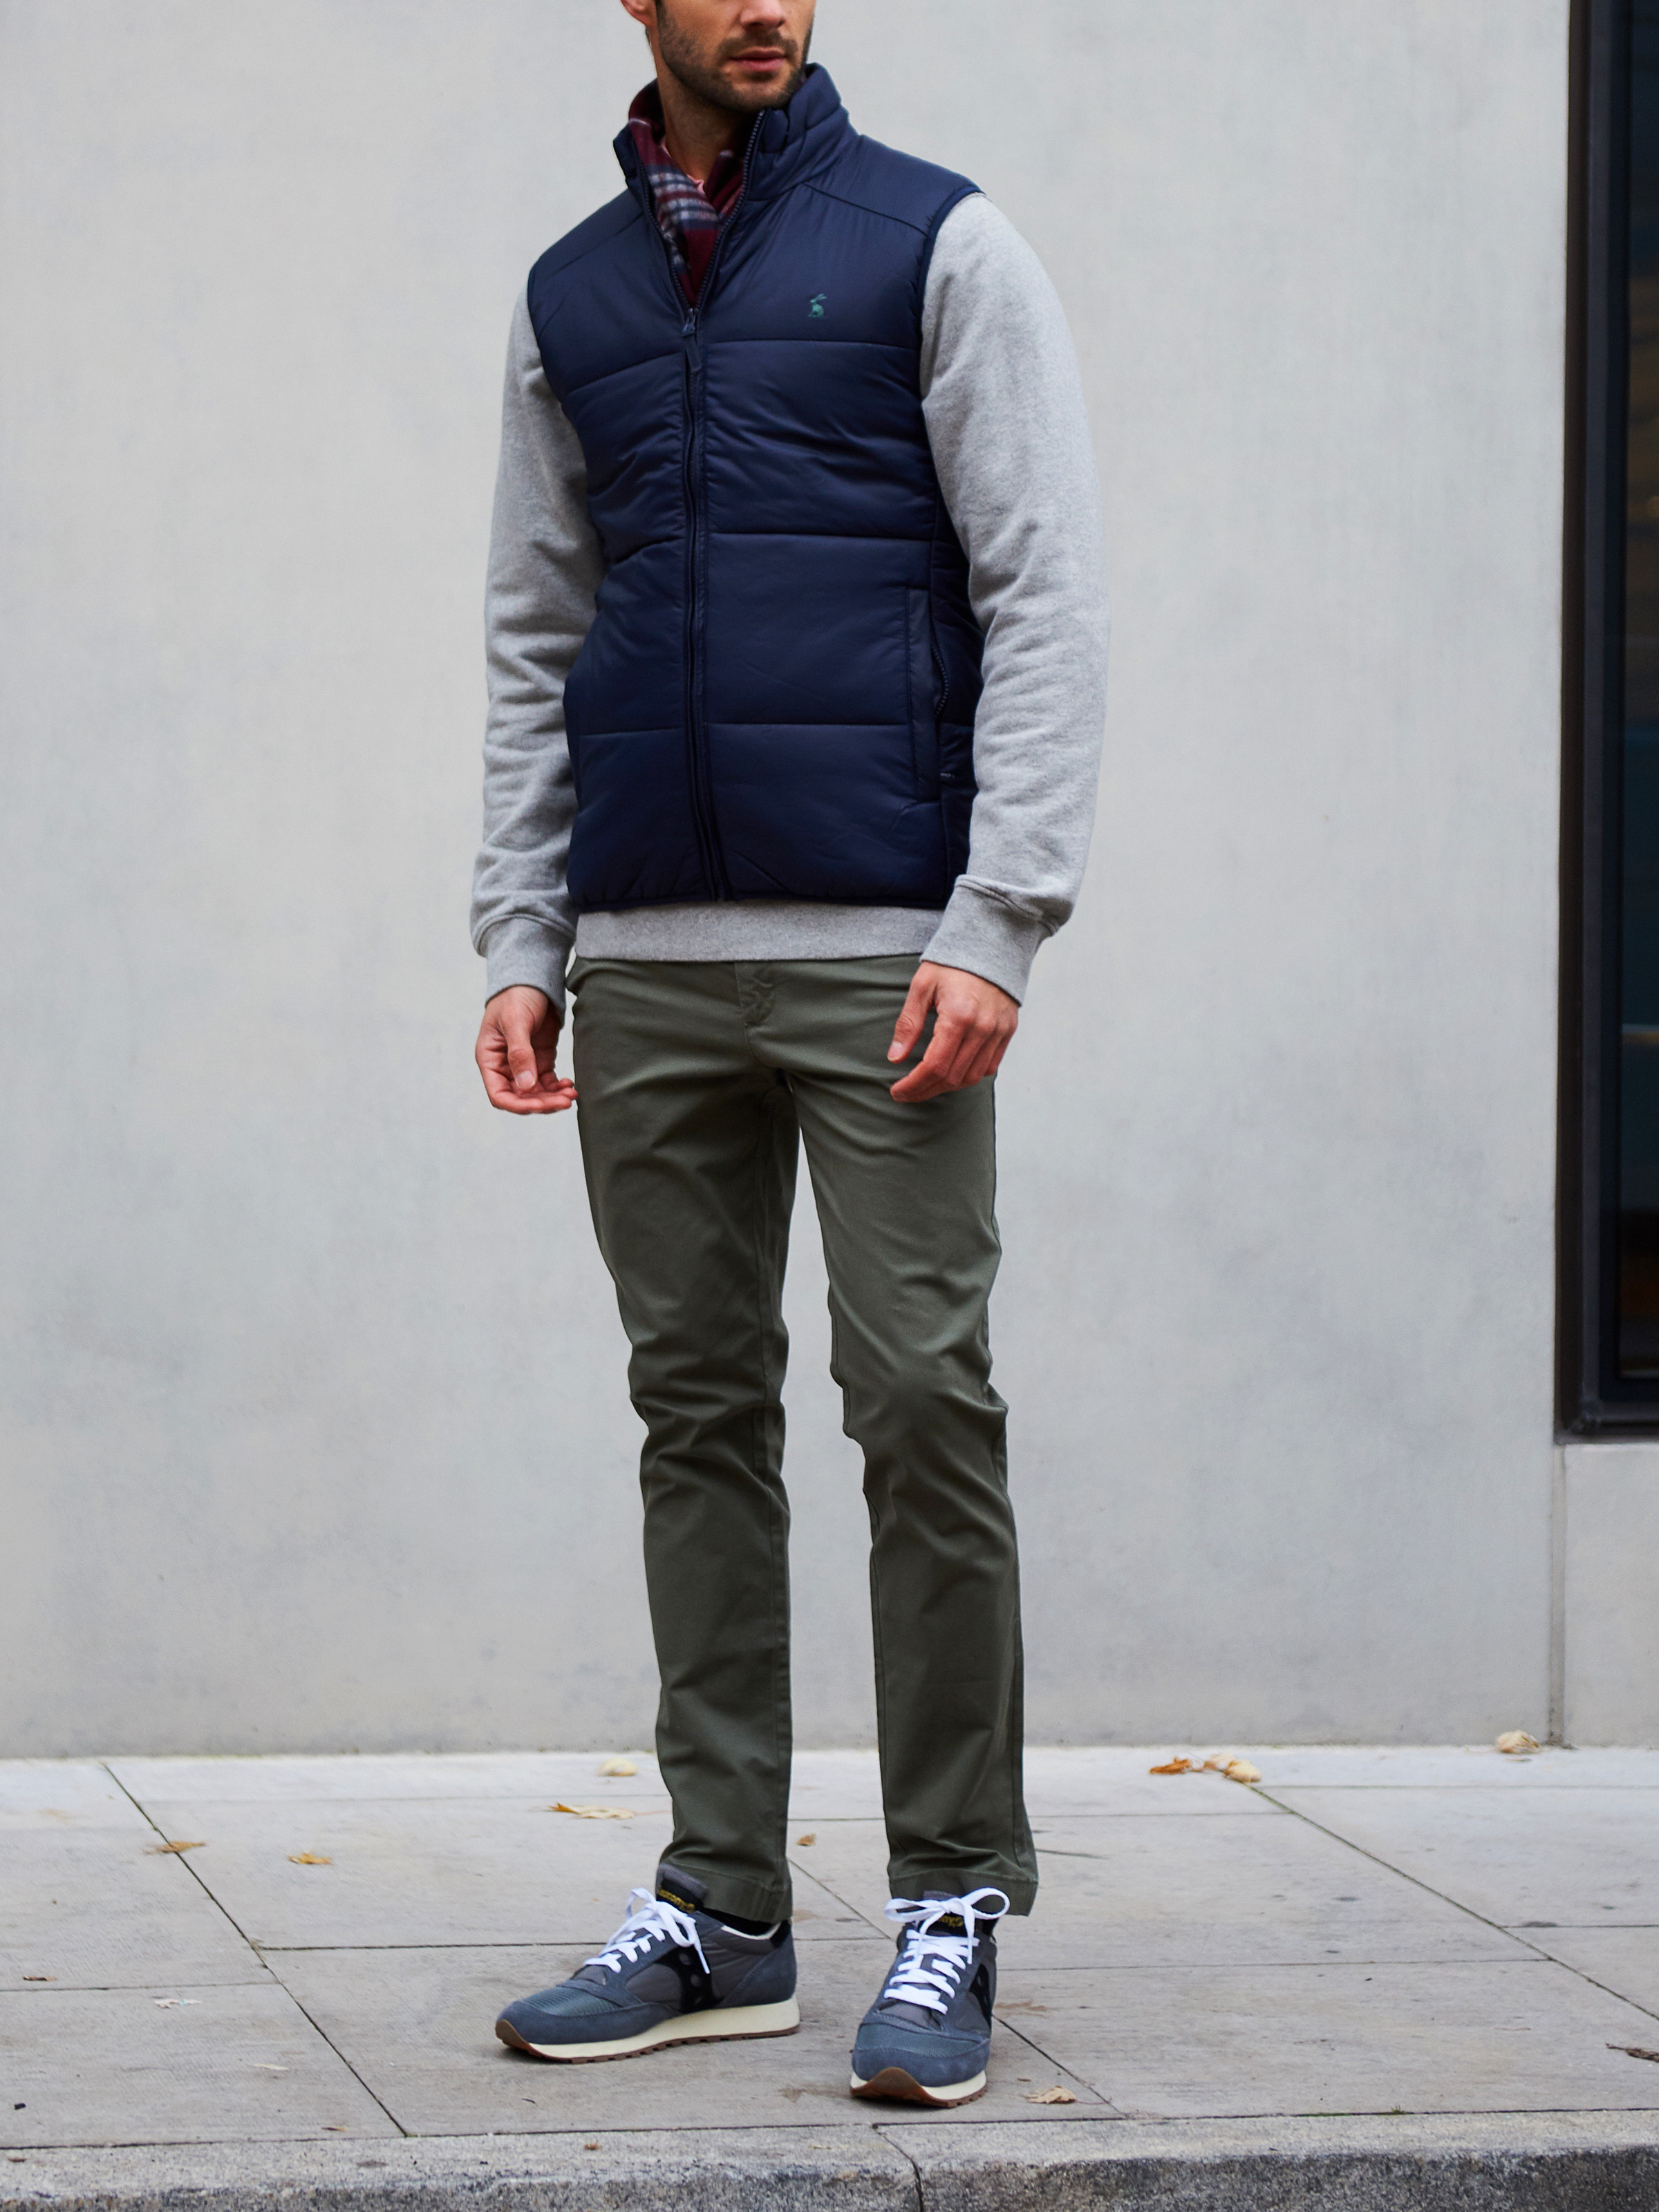 Men's outfit idea for 2021 with vest, gray sweatshirt, colored chinos, neutral sneakers. Suitable for fall and winter.